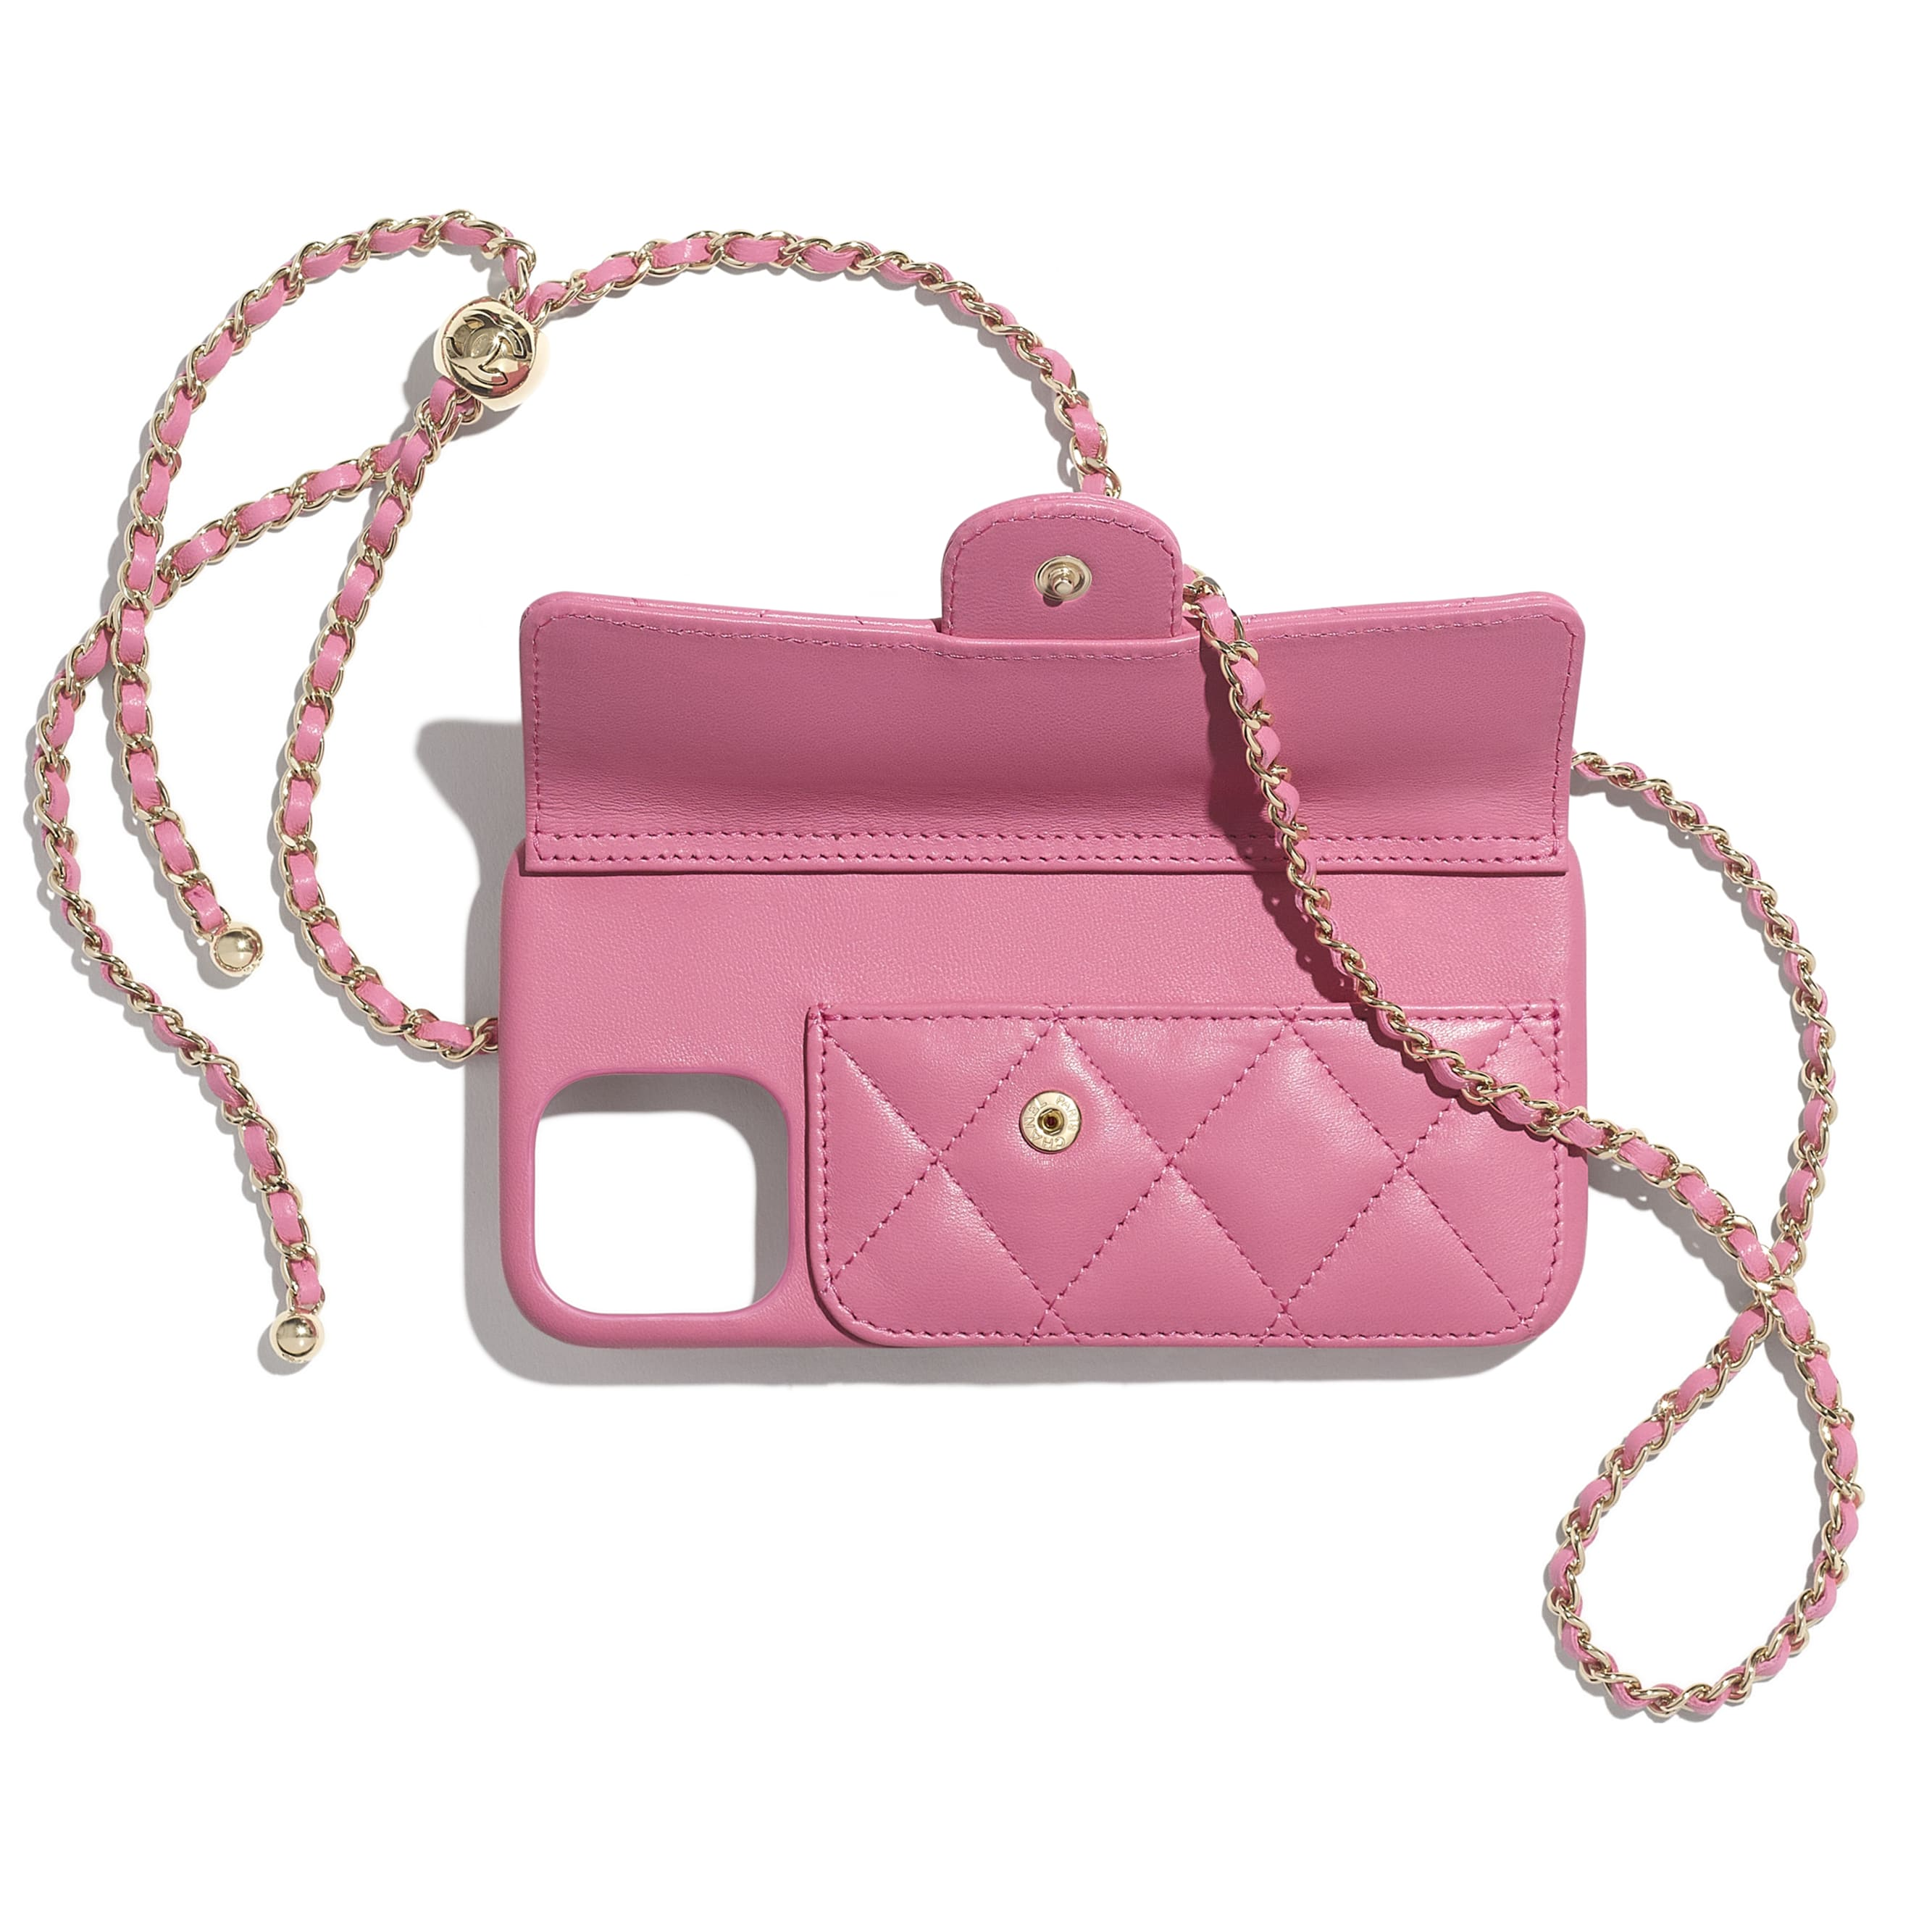 Classic Case for iPhone XII Pro MAX with chain - Pink - Lambskin - CHANEL - Alternative view - see standard sized version